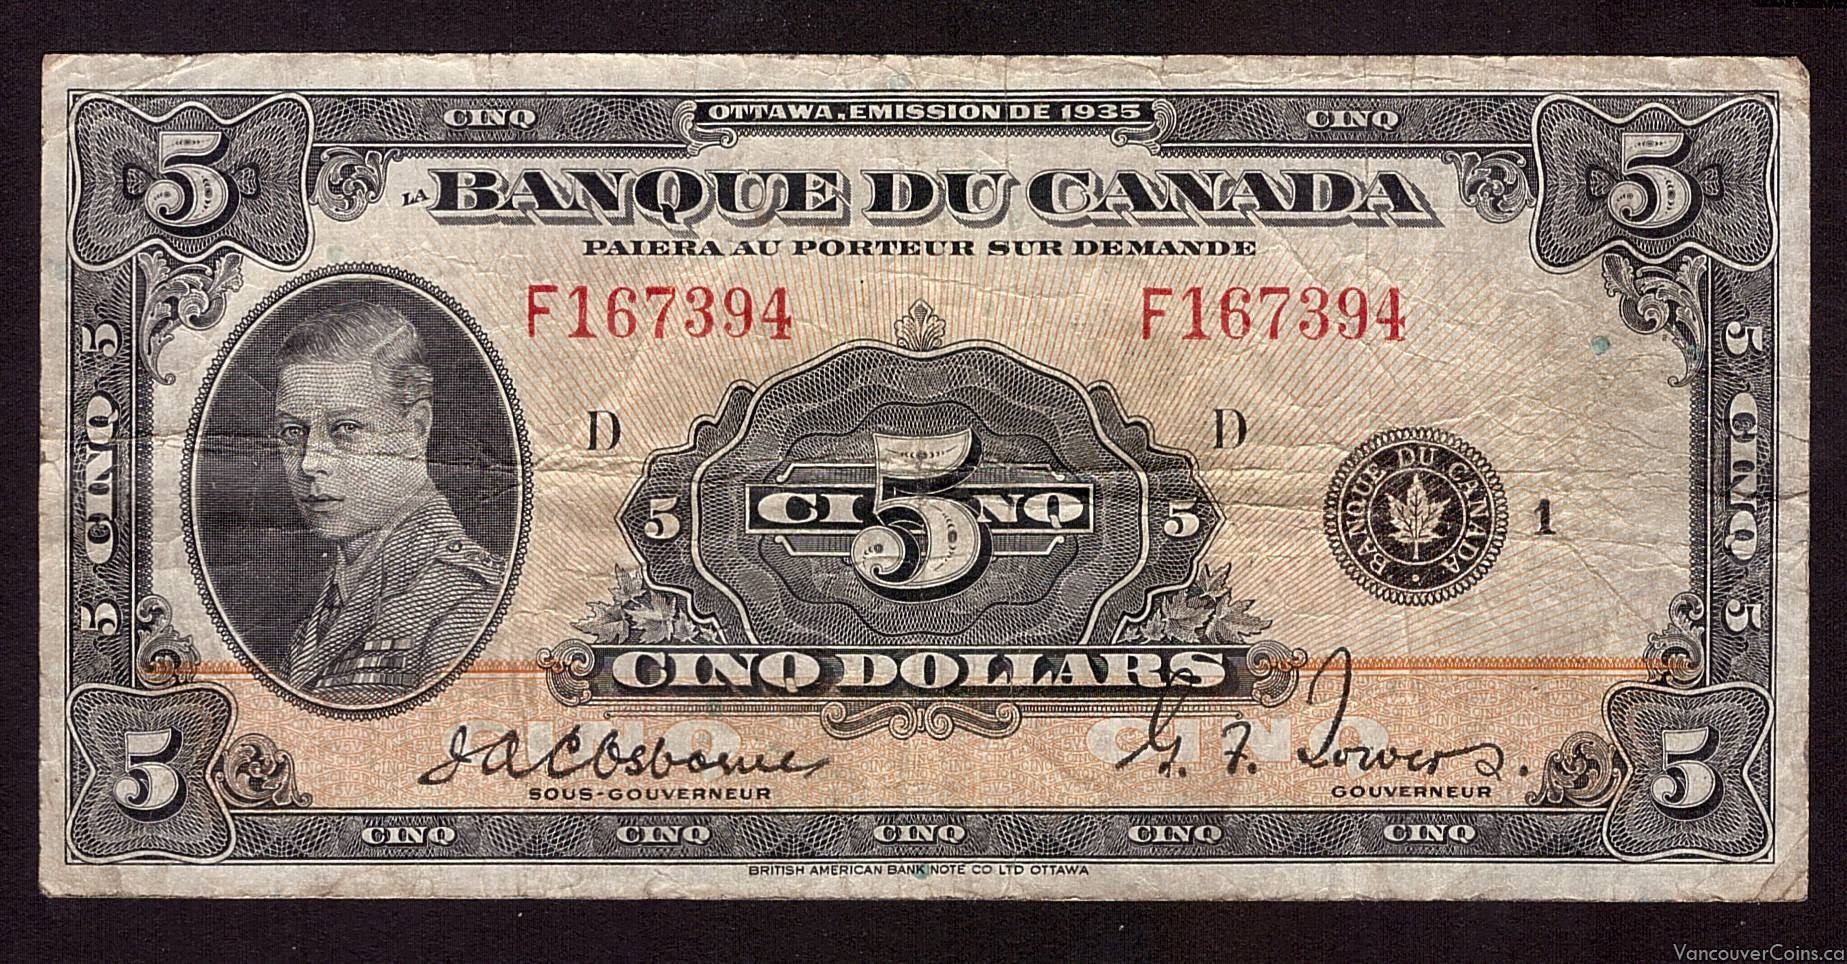 1935 Canada $5 banknote French F167394